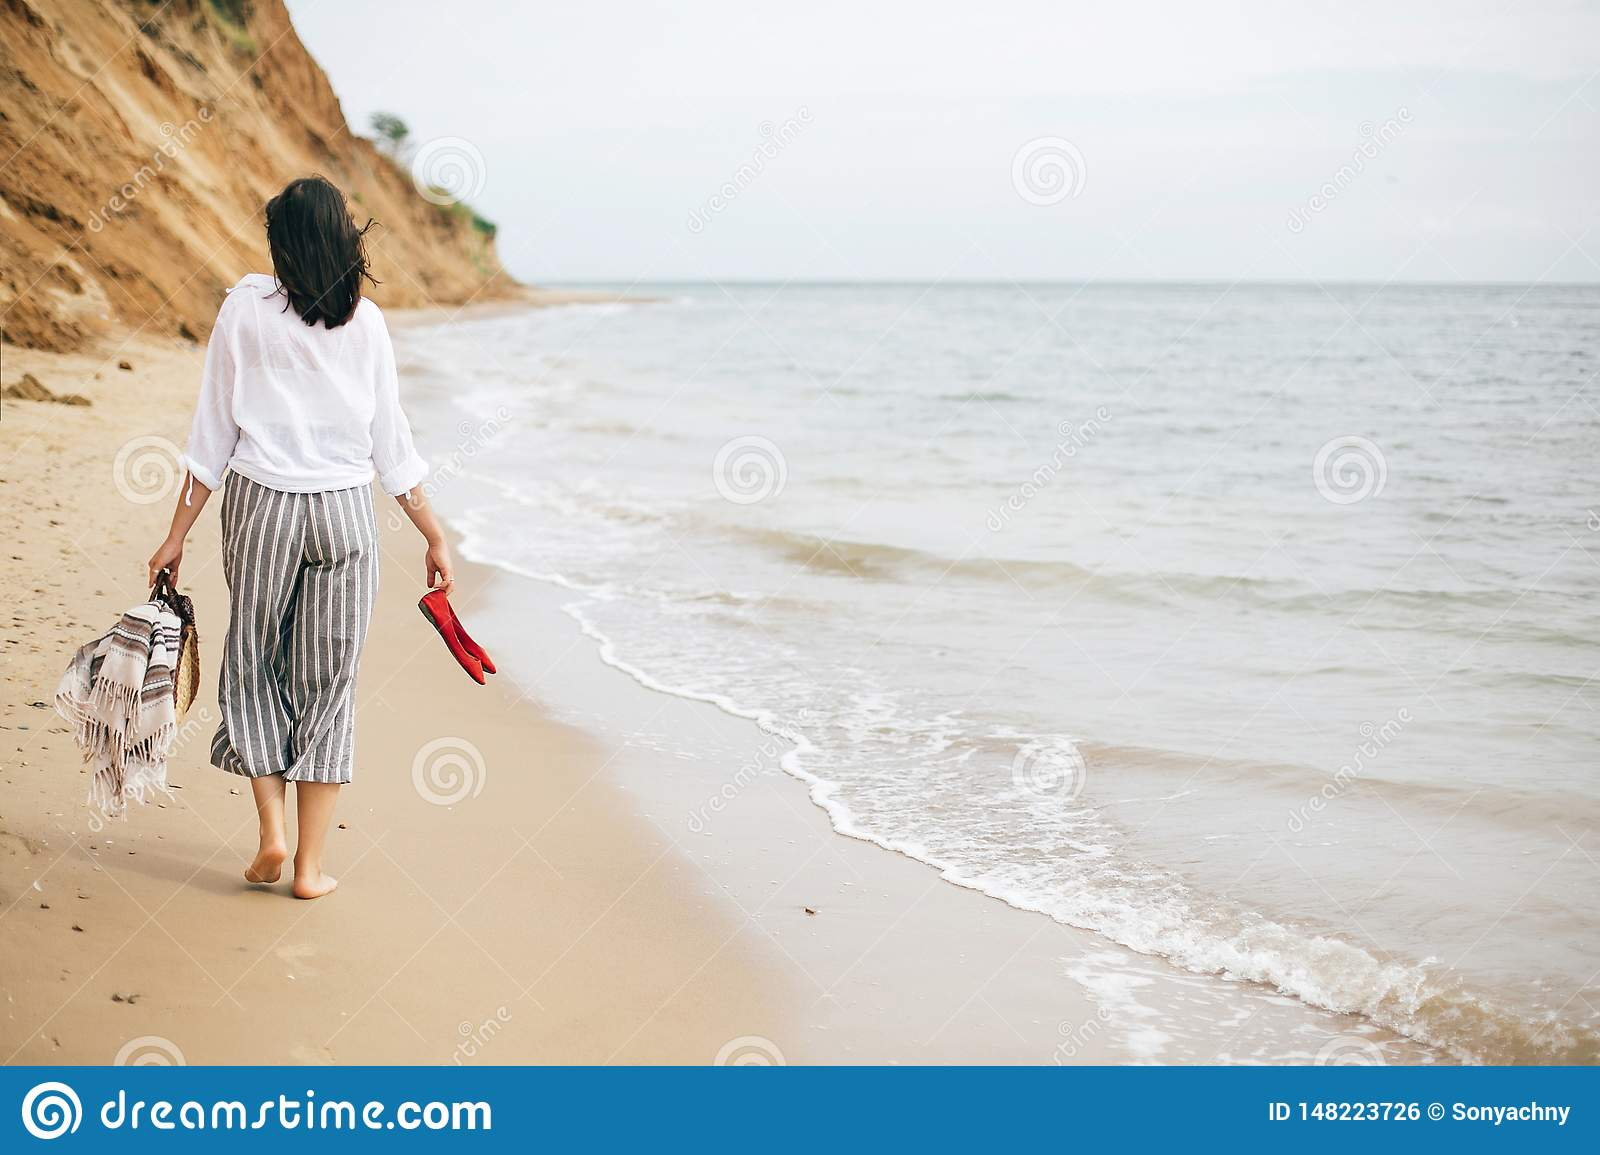 Happy boho woman relaxing at sea, enjoying walk on tropical island. Stylish hipster girl walking barefoot on beach, holding bag